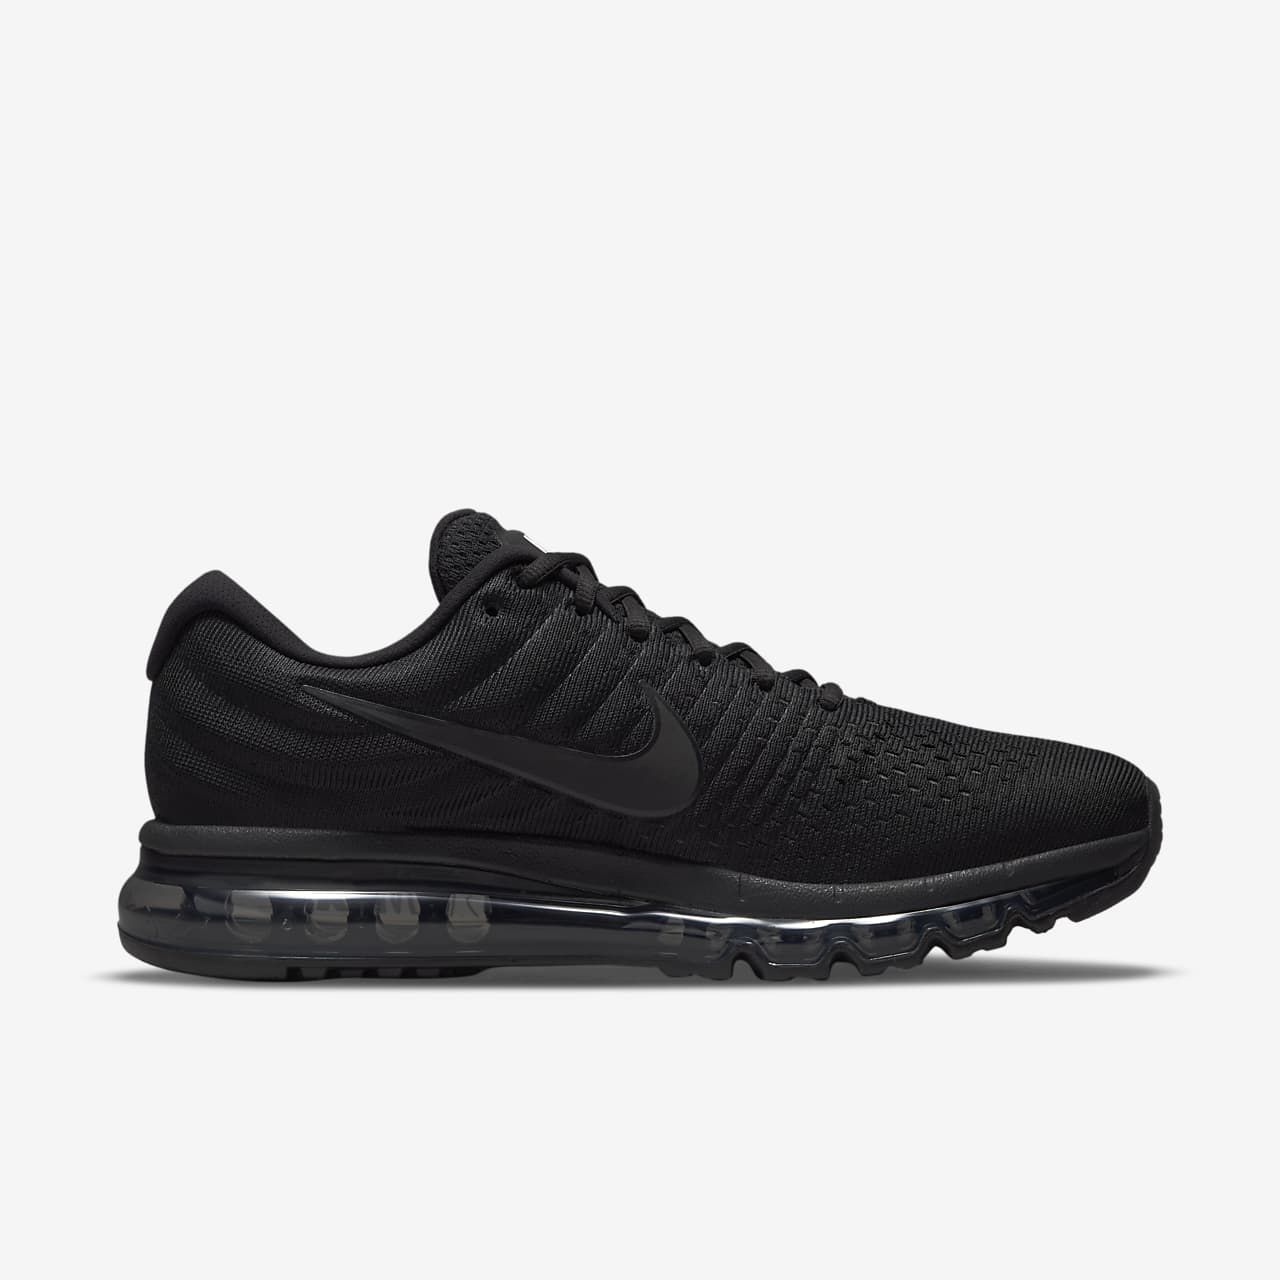 600acd844804 Nike Air Max 2017 Men s Shoe. Nike.com NL